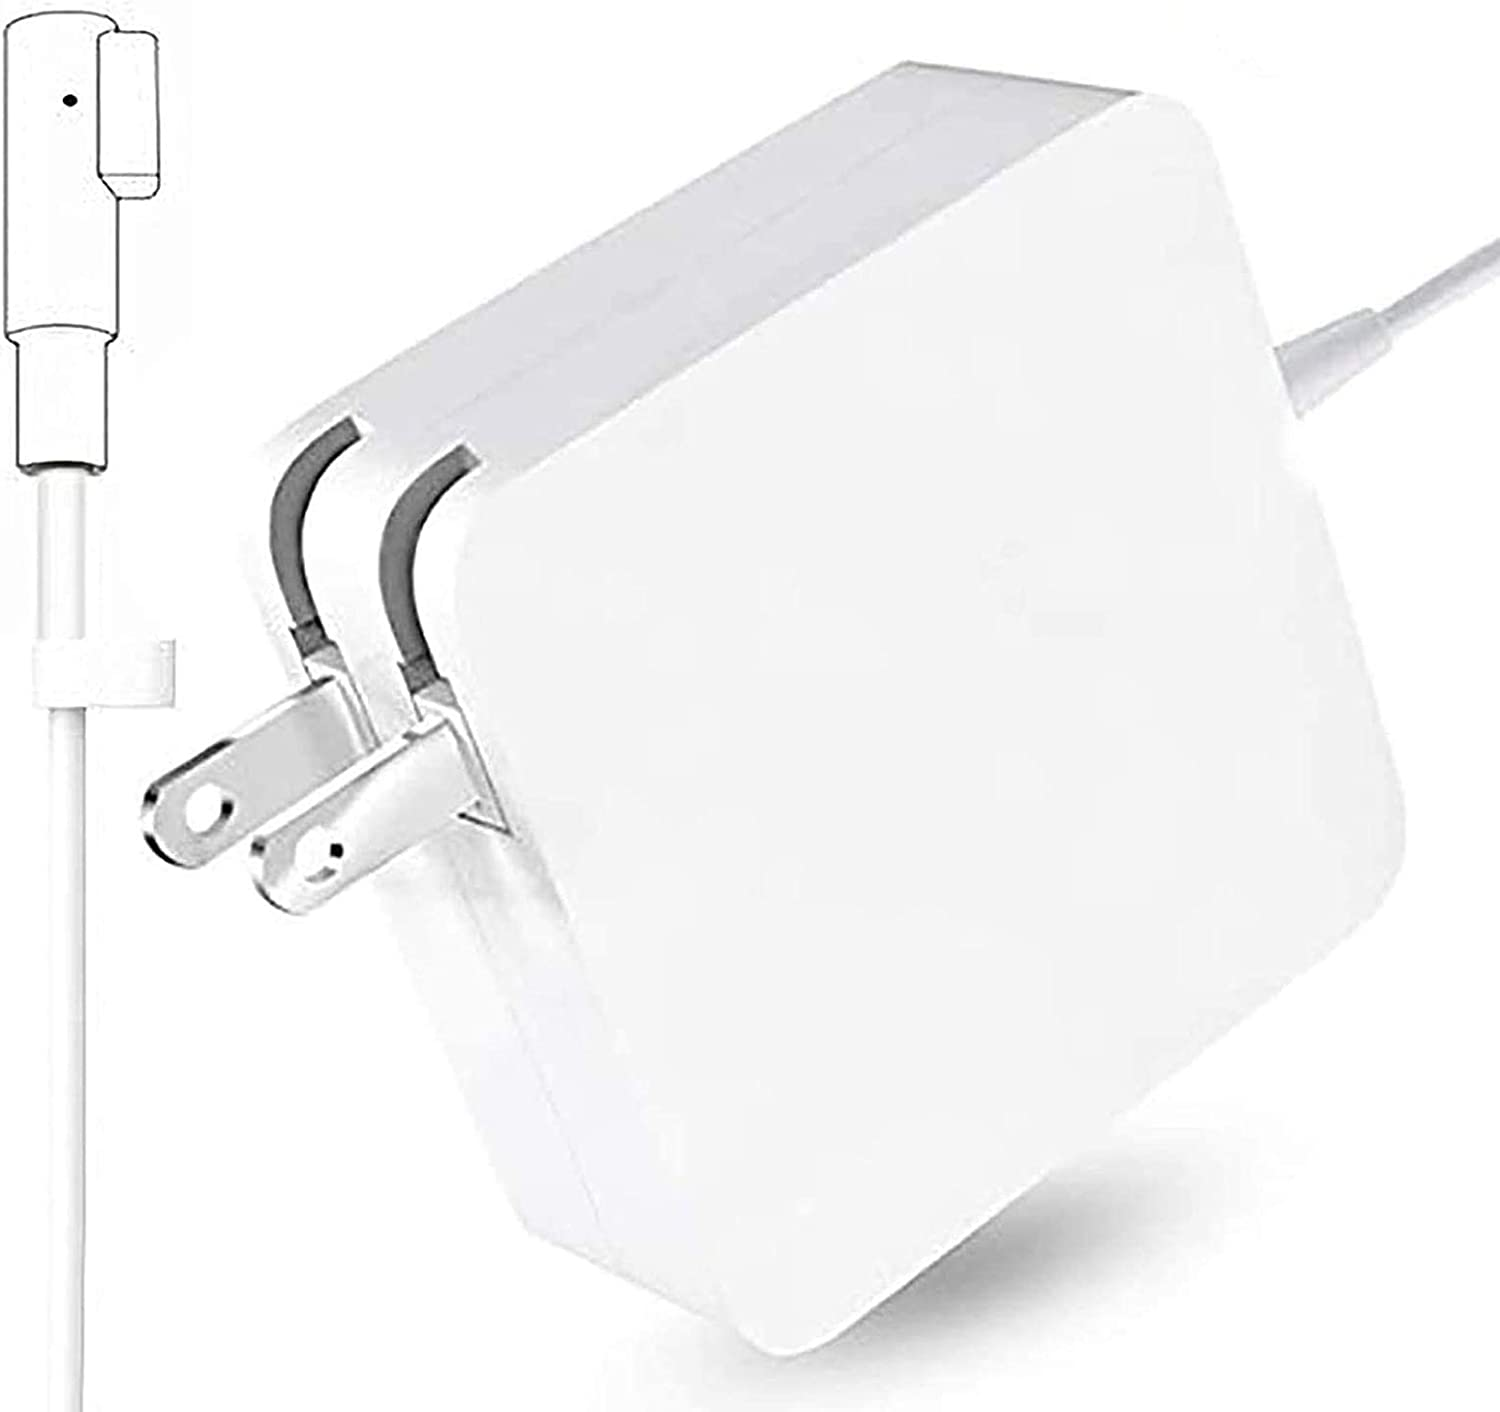 85W Mac Book Pro Charger L-Tip Power Adapter Replacement for Mac Book Pro 13,15,17Inch with Magnetic Connector (for Models Before Mid 2012).